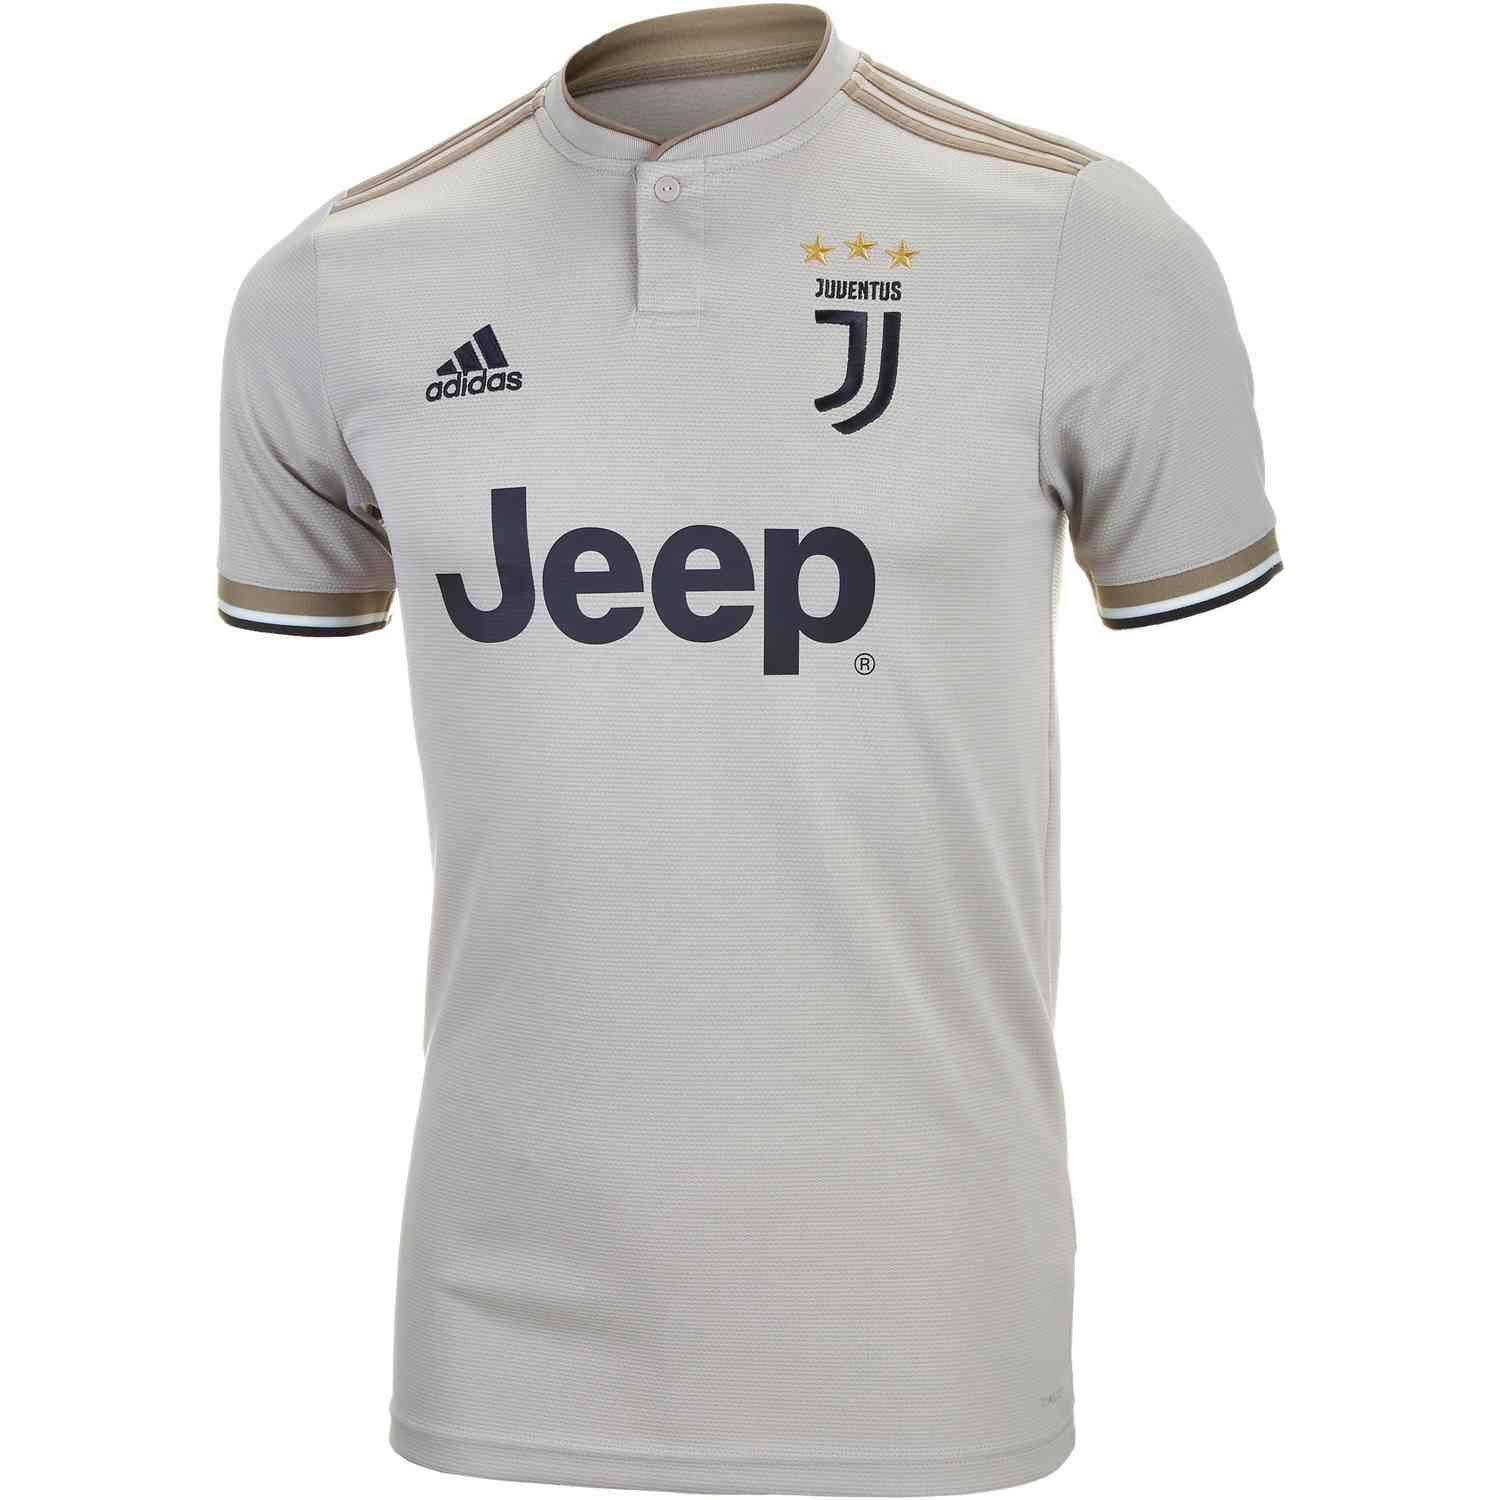 new product 1ccfc b1deb adidas Juventus Away Jersey 18/19 Season